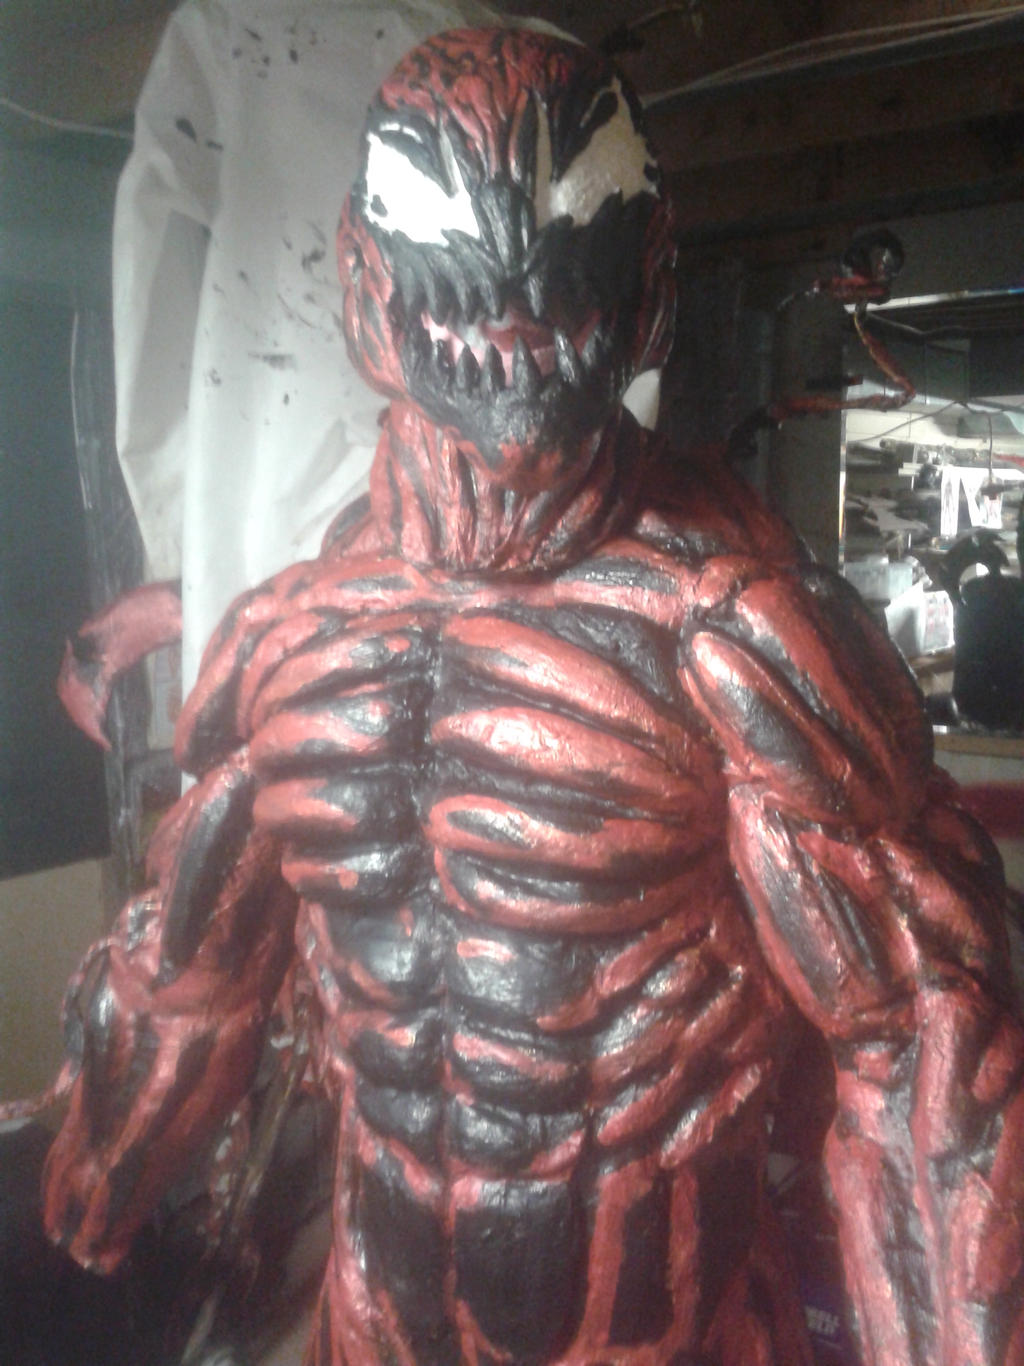 carnage costume painted by mongrelman on DeviantArt